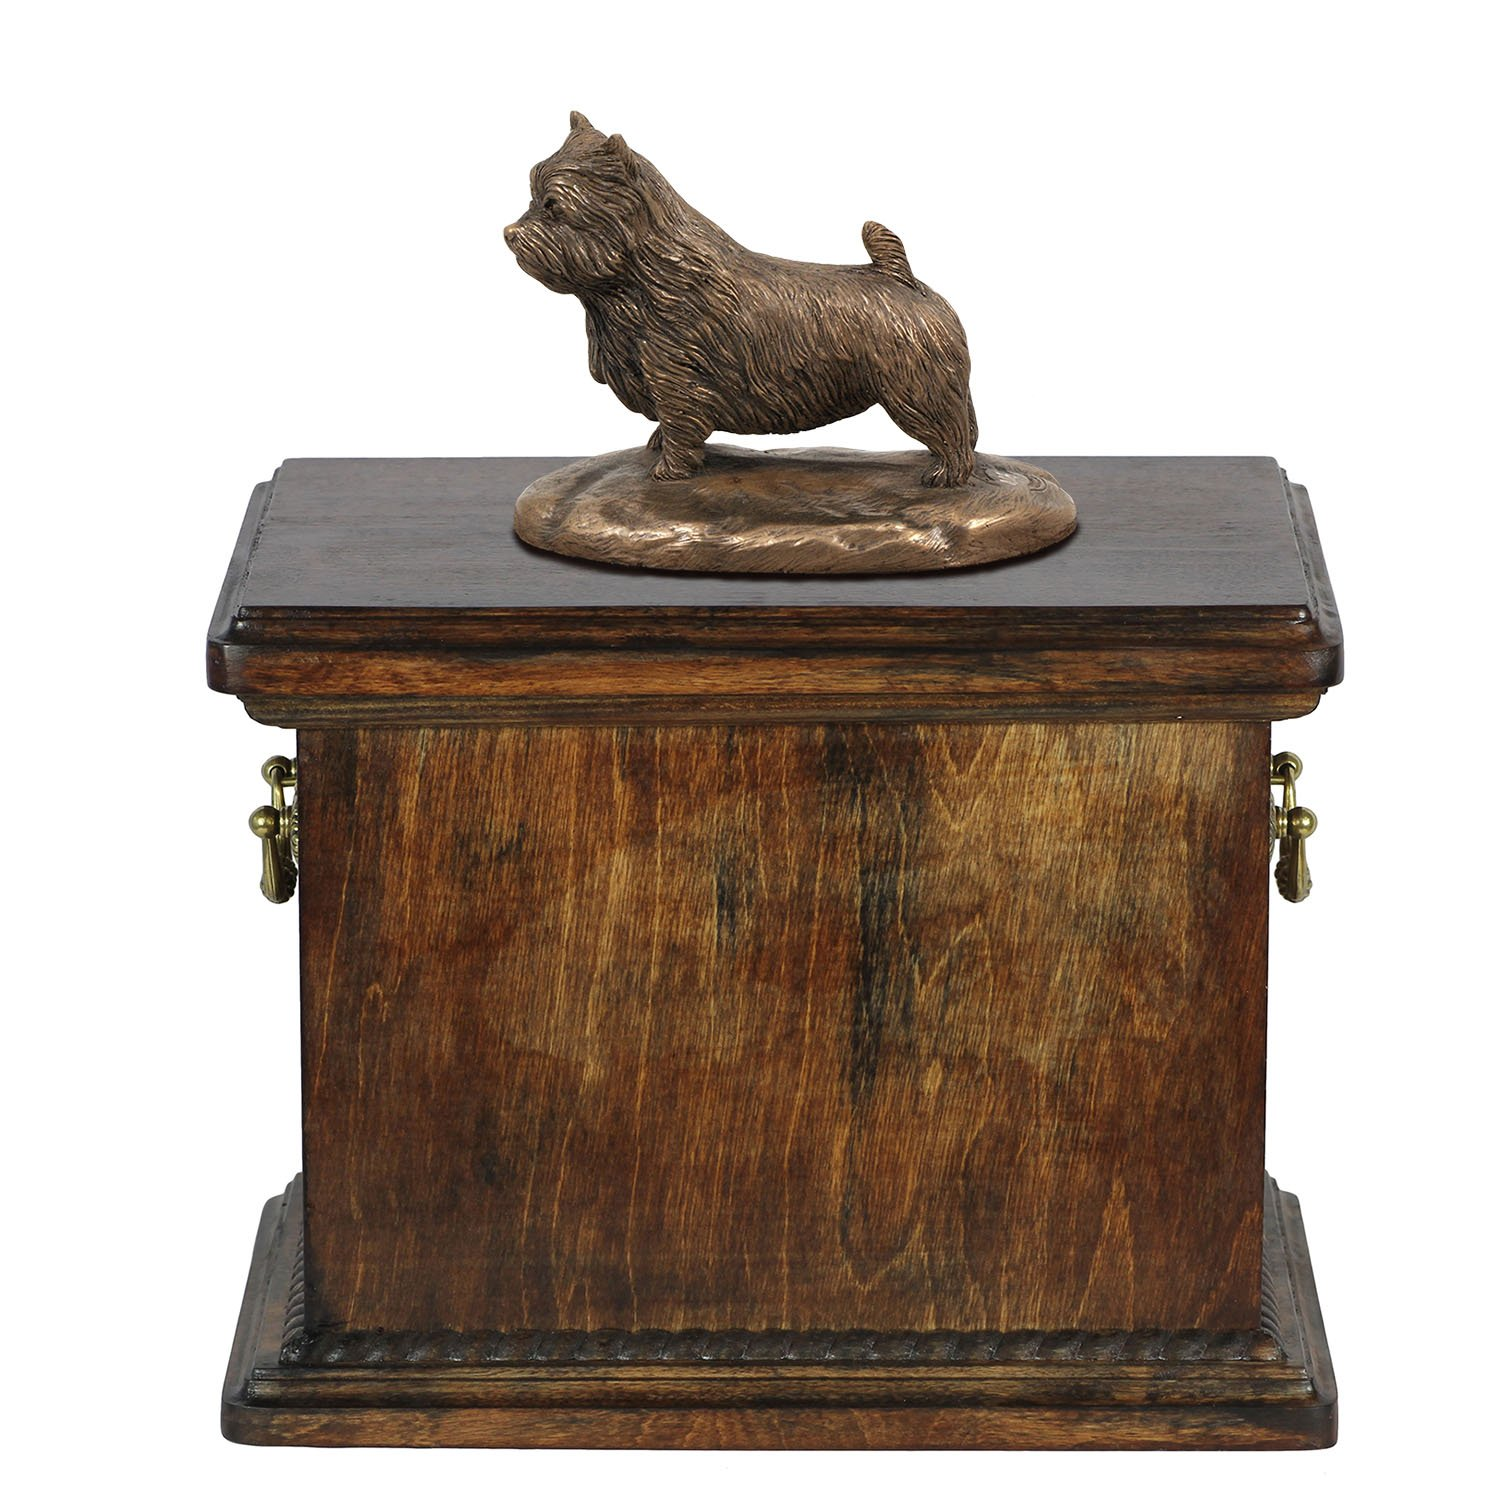 Norwich Terrier, memorial, urn for dog's ashes, with dog statue, ArtDog